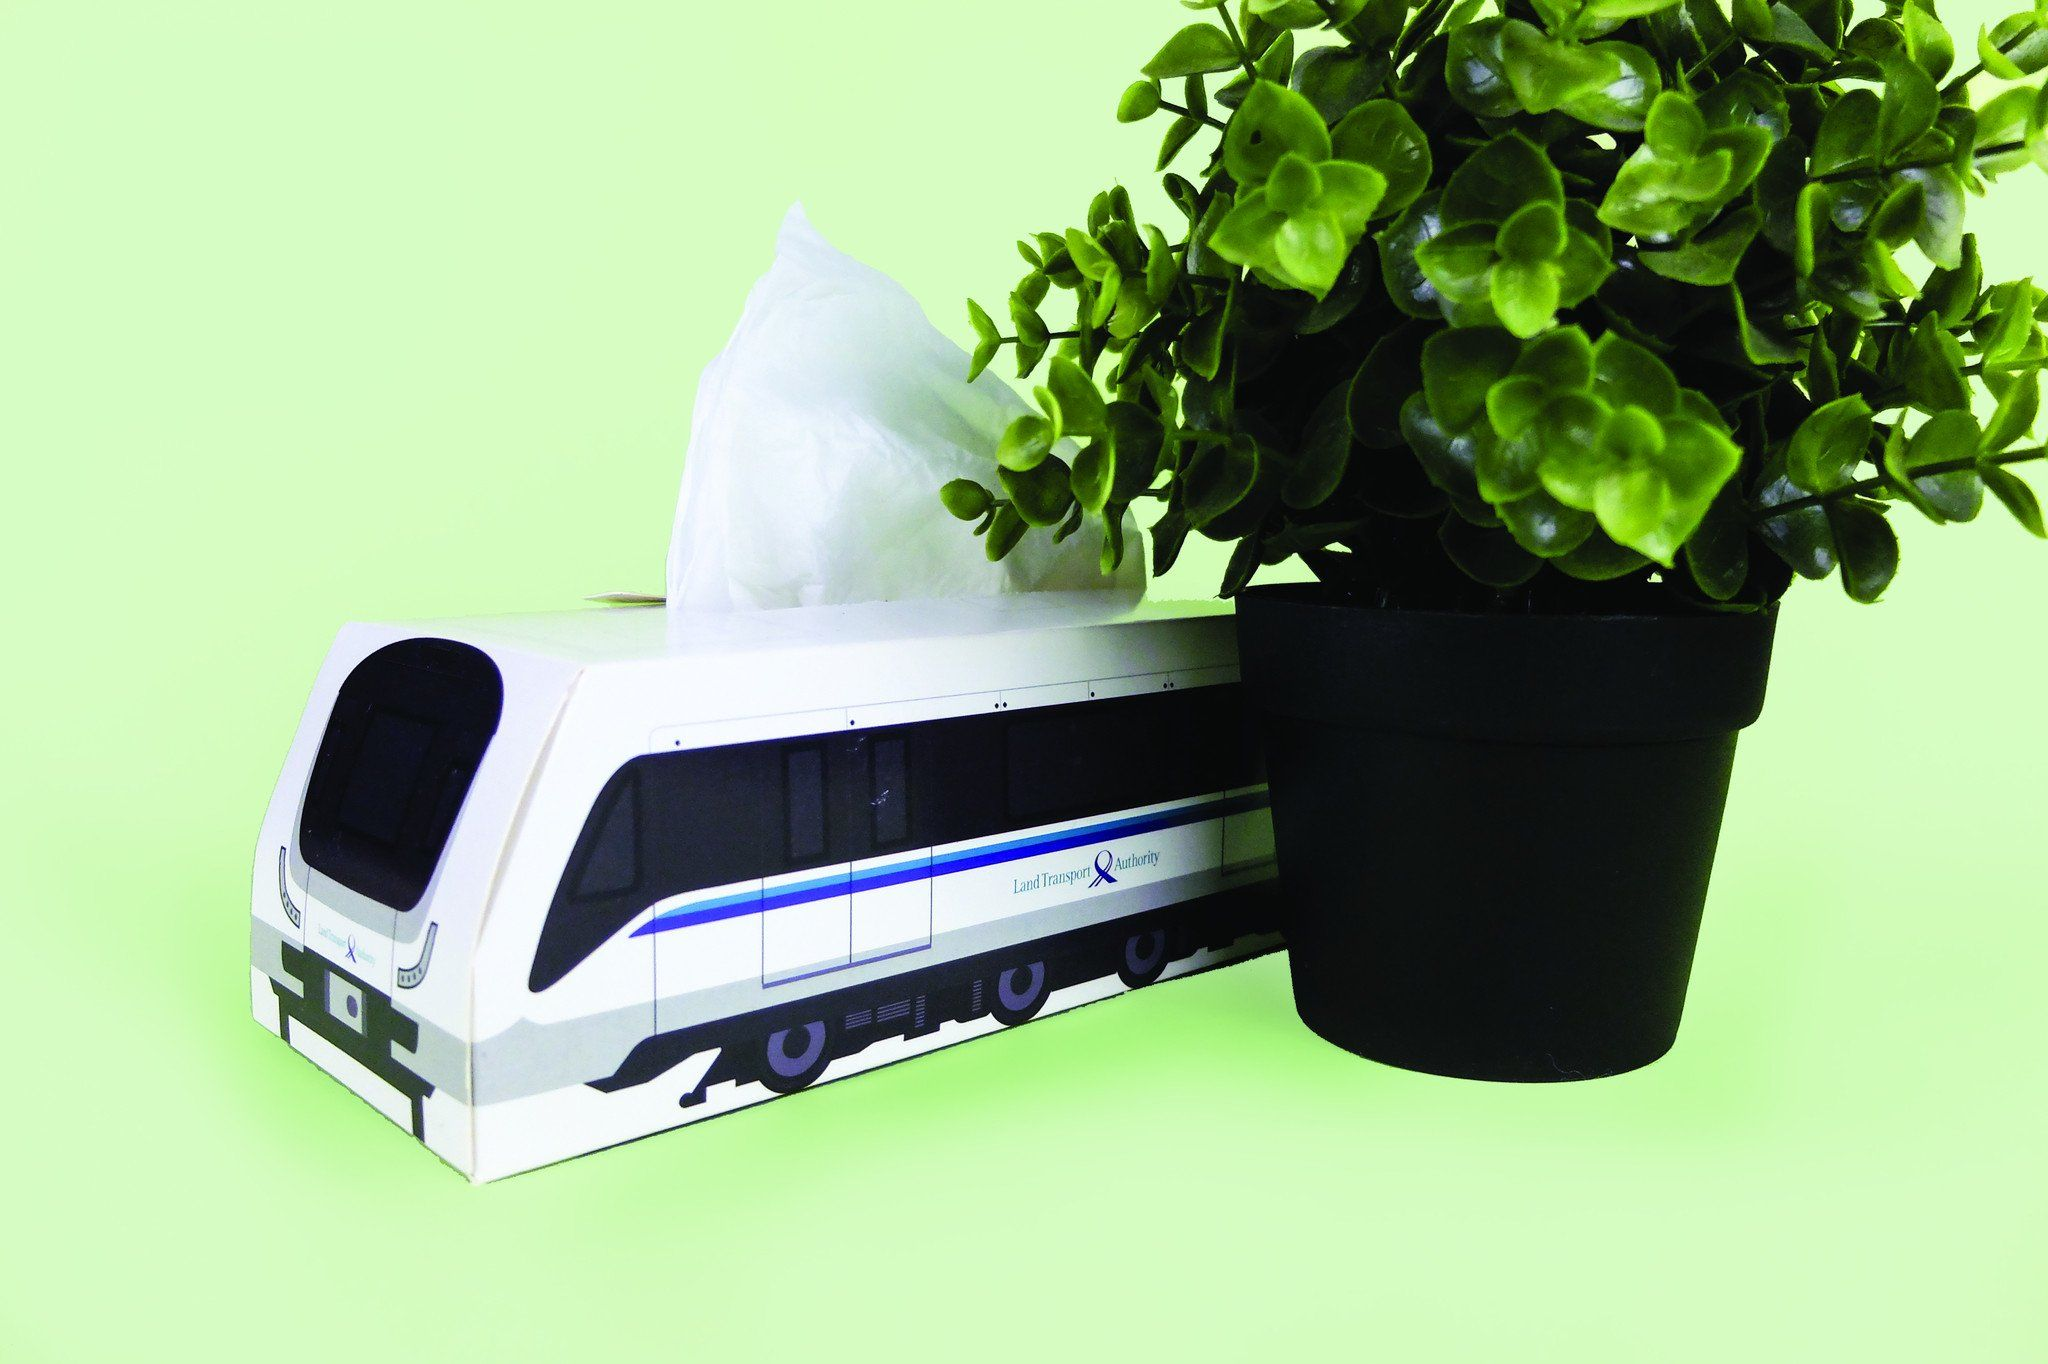 Downtown Line Train Tissue Box - Local Home Decor - Knackstop - Naiise